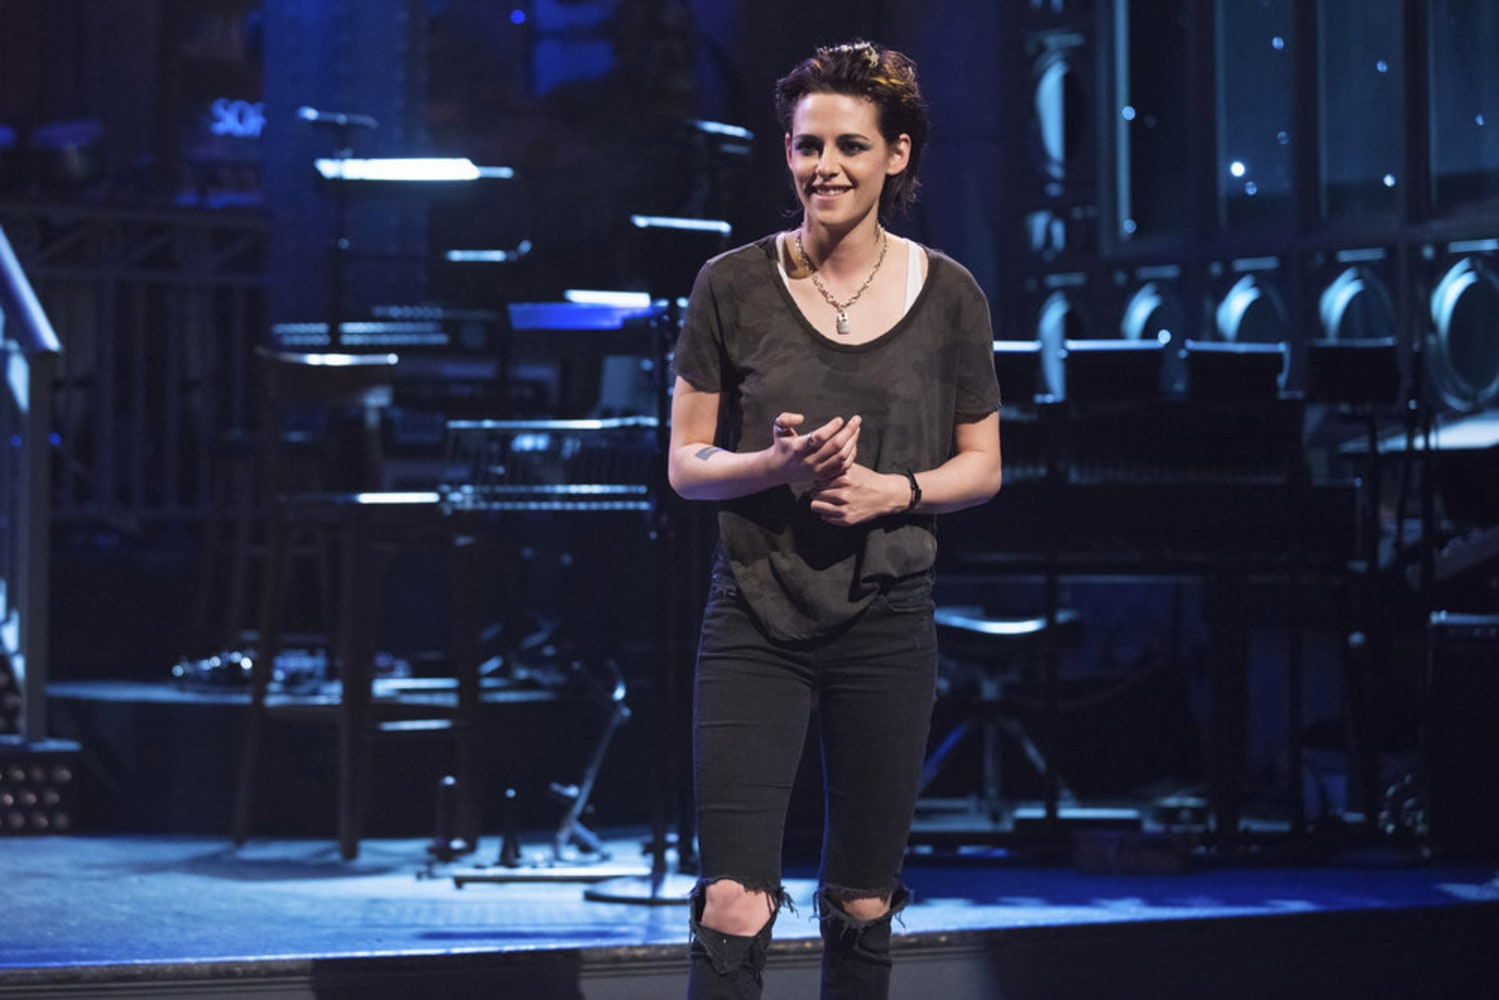 Kristen Stewart Drops a Well-Timed F-Bomb During Her 'SNL' Monologue